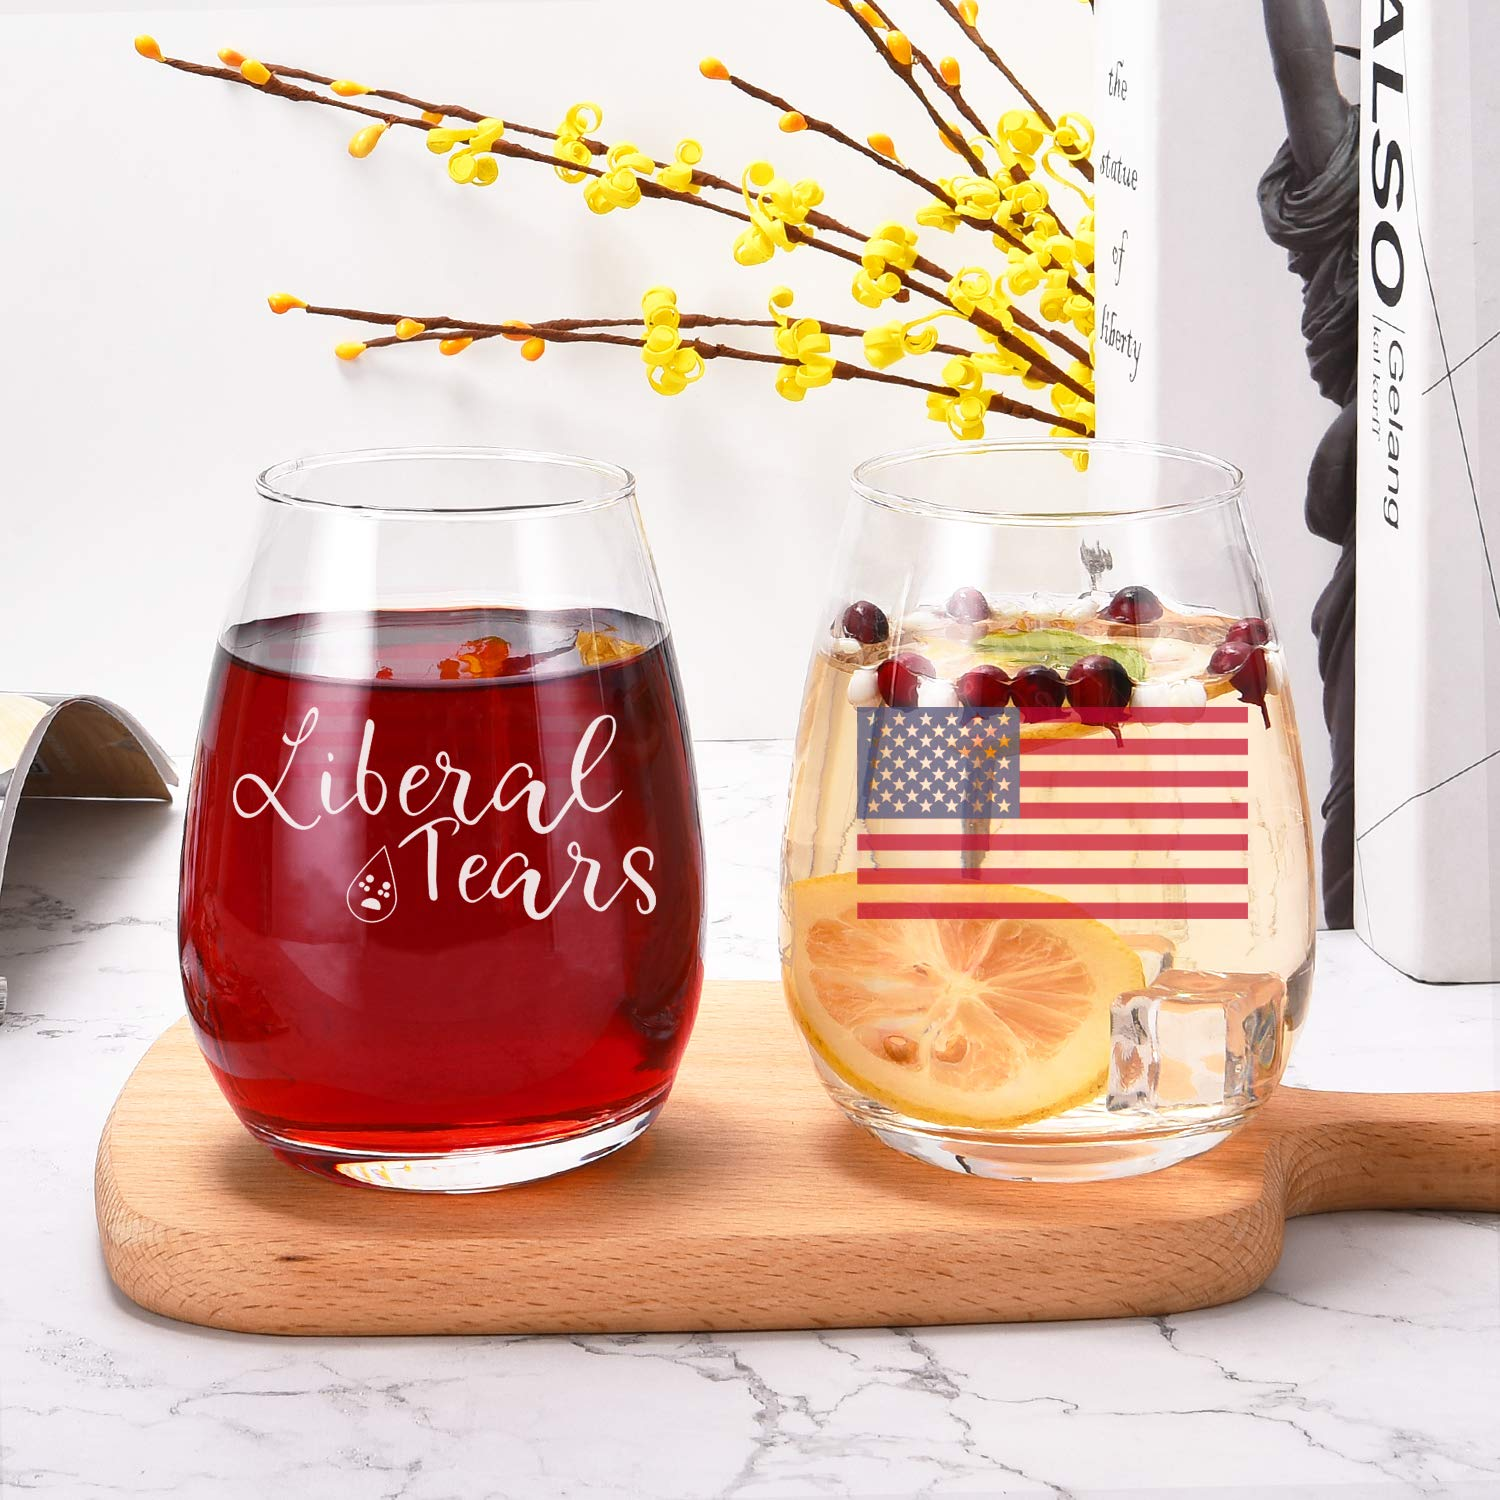 American Patriot Gifts/for mom dad husband wife Wine Glasses Patriotic Funny Stemless Wine Glass for US Independence Day Patriotic Themed Glass Liberal Tears Wine Glass with American Flag